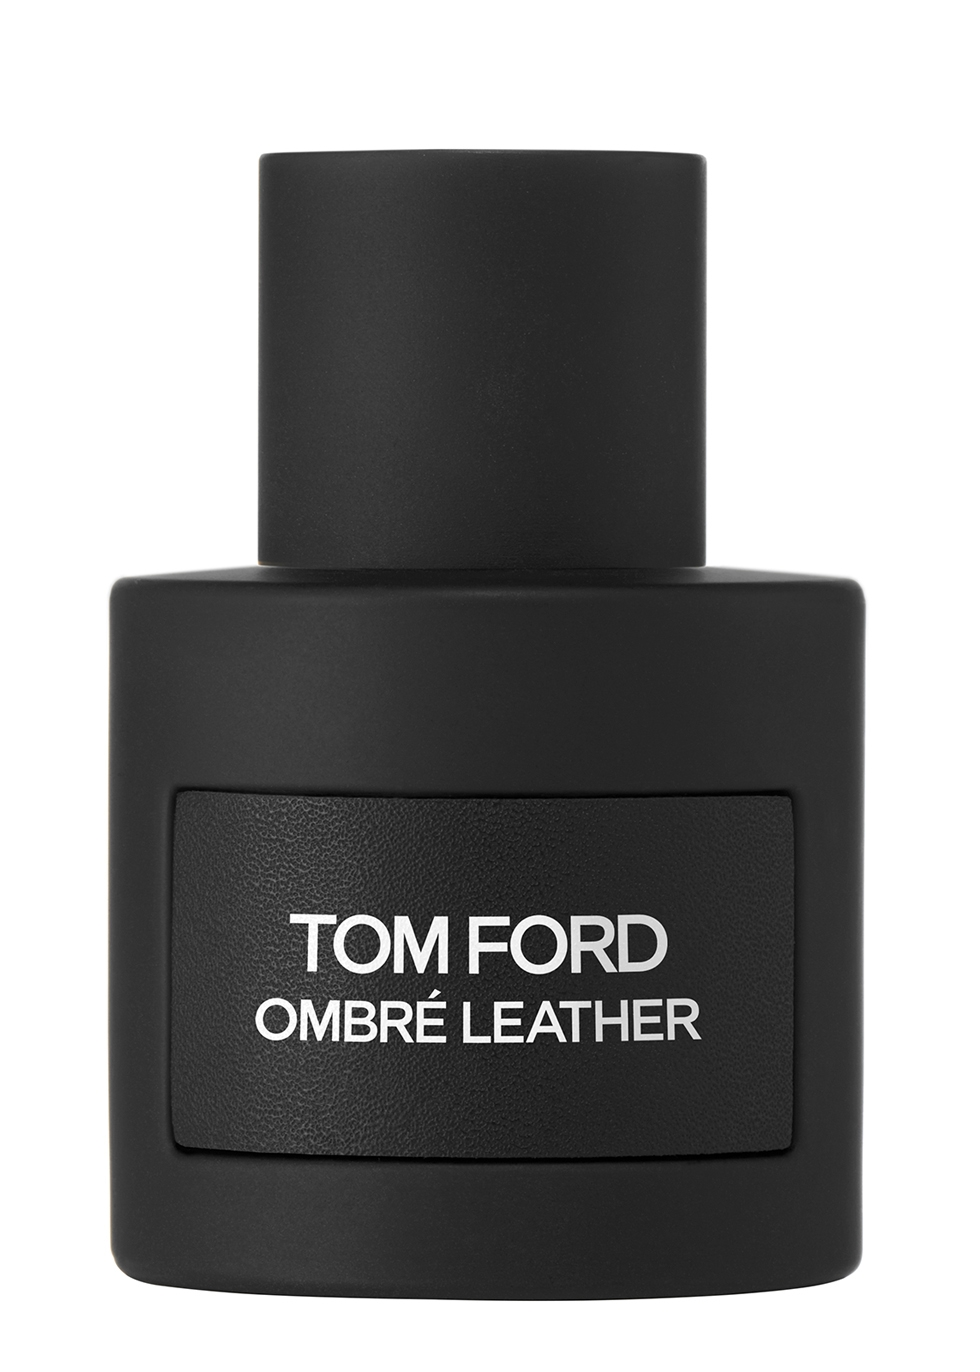 Ombré Leather 50ml - Tom Ford